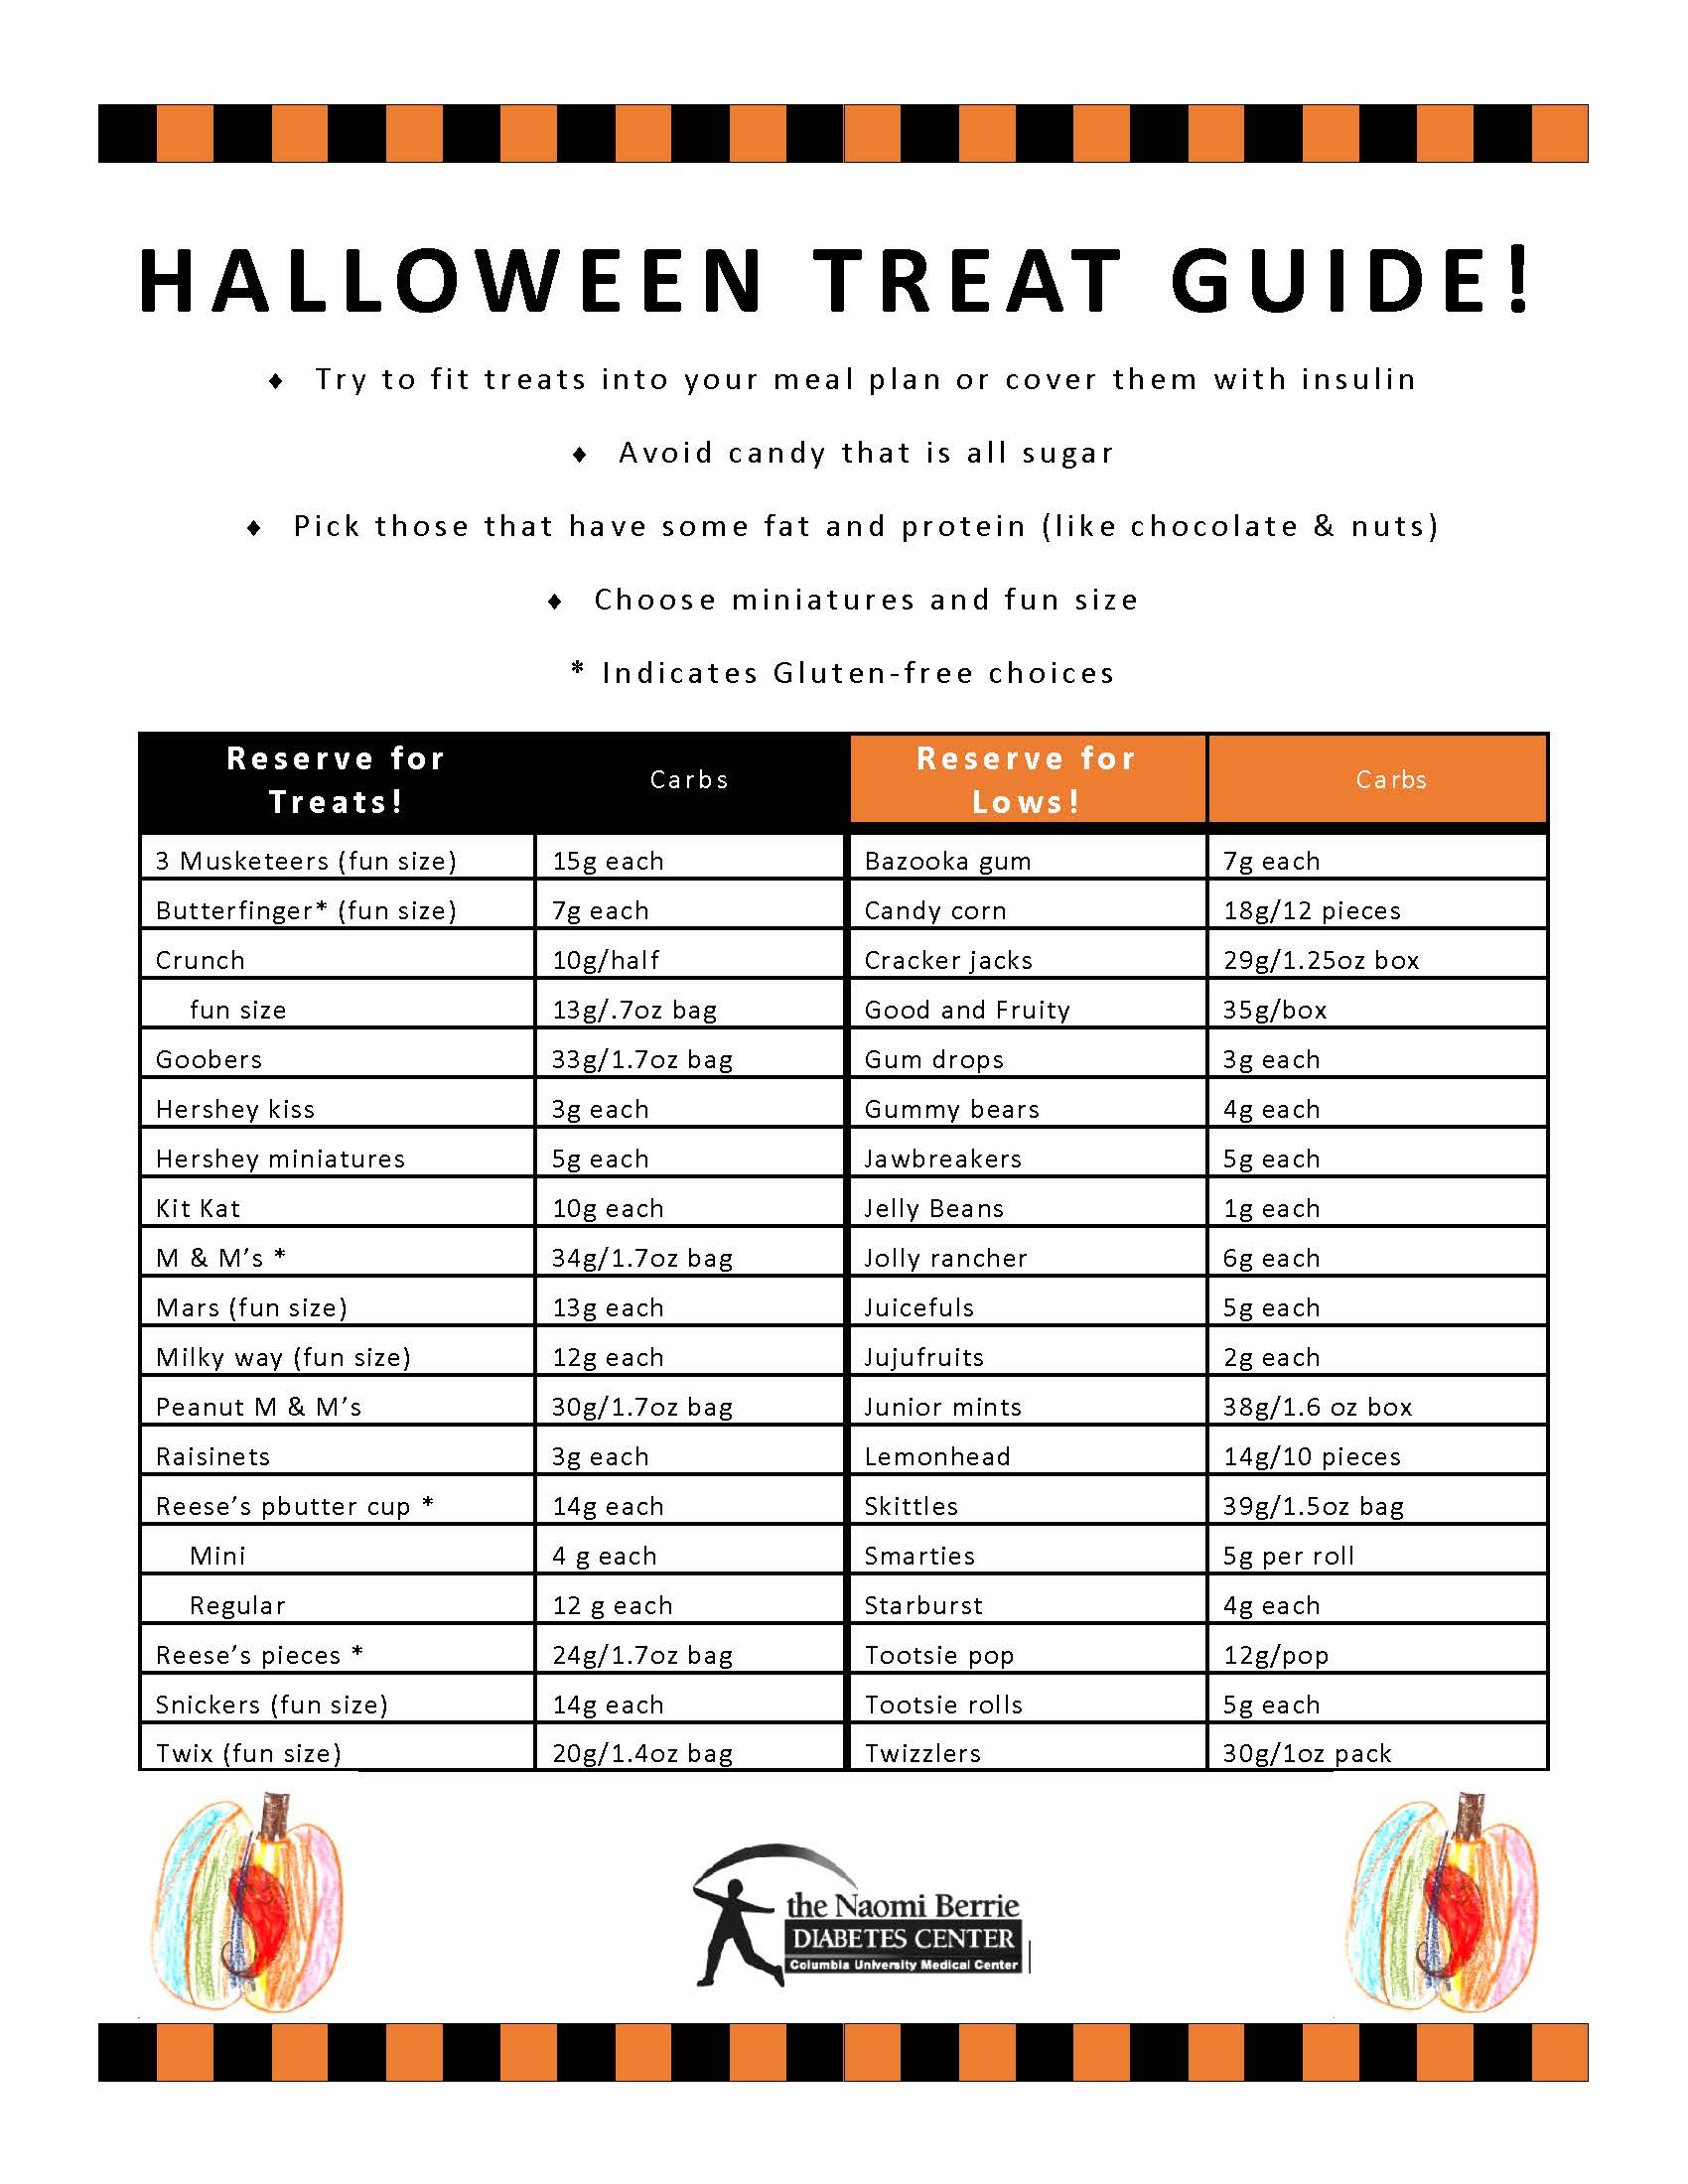 Berrie Center Guide to Halloween